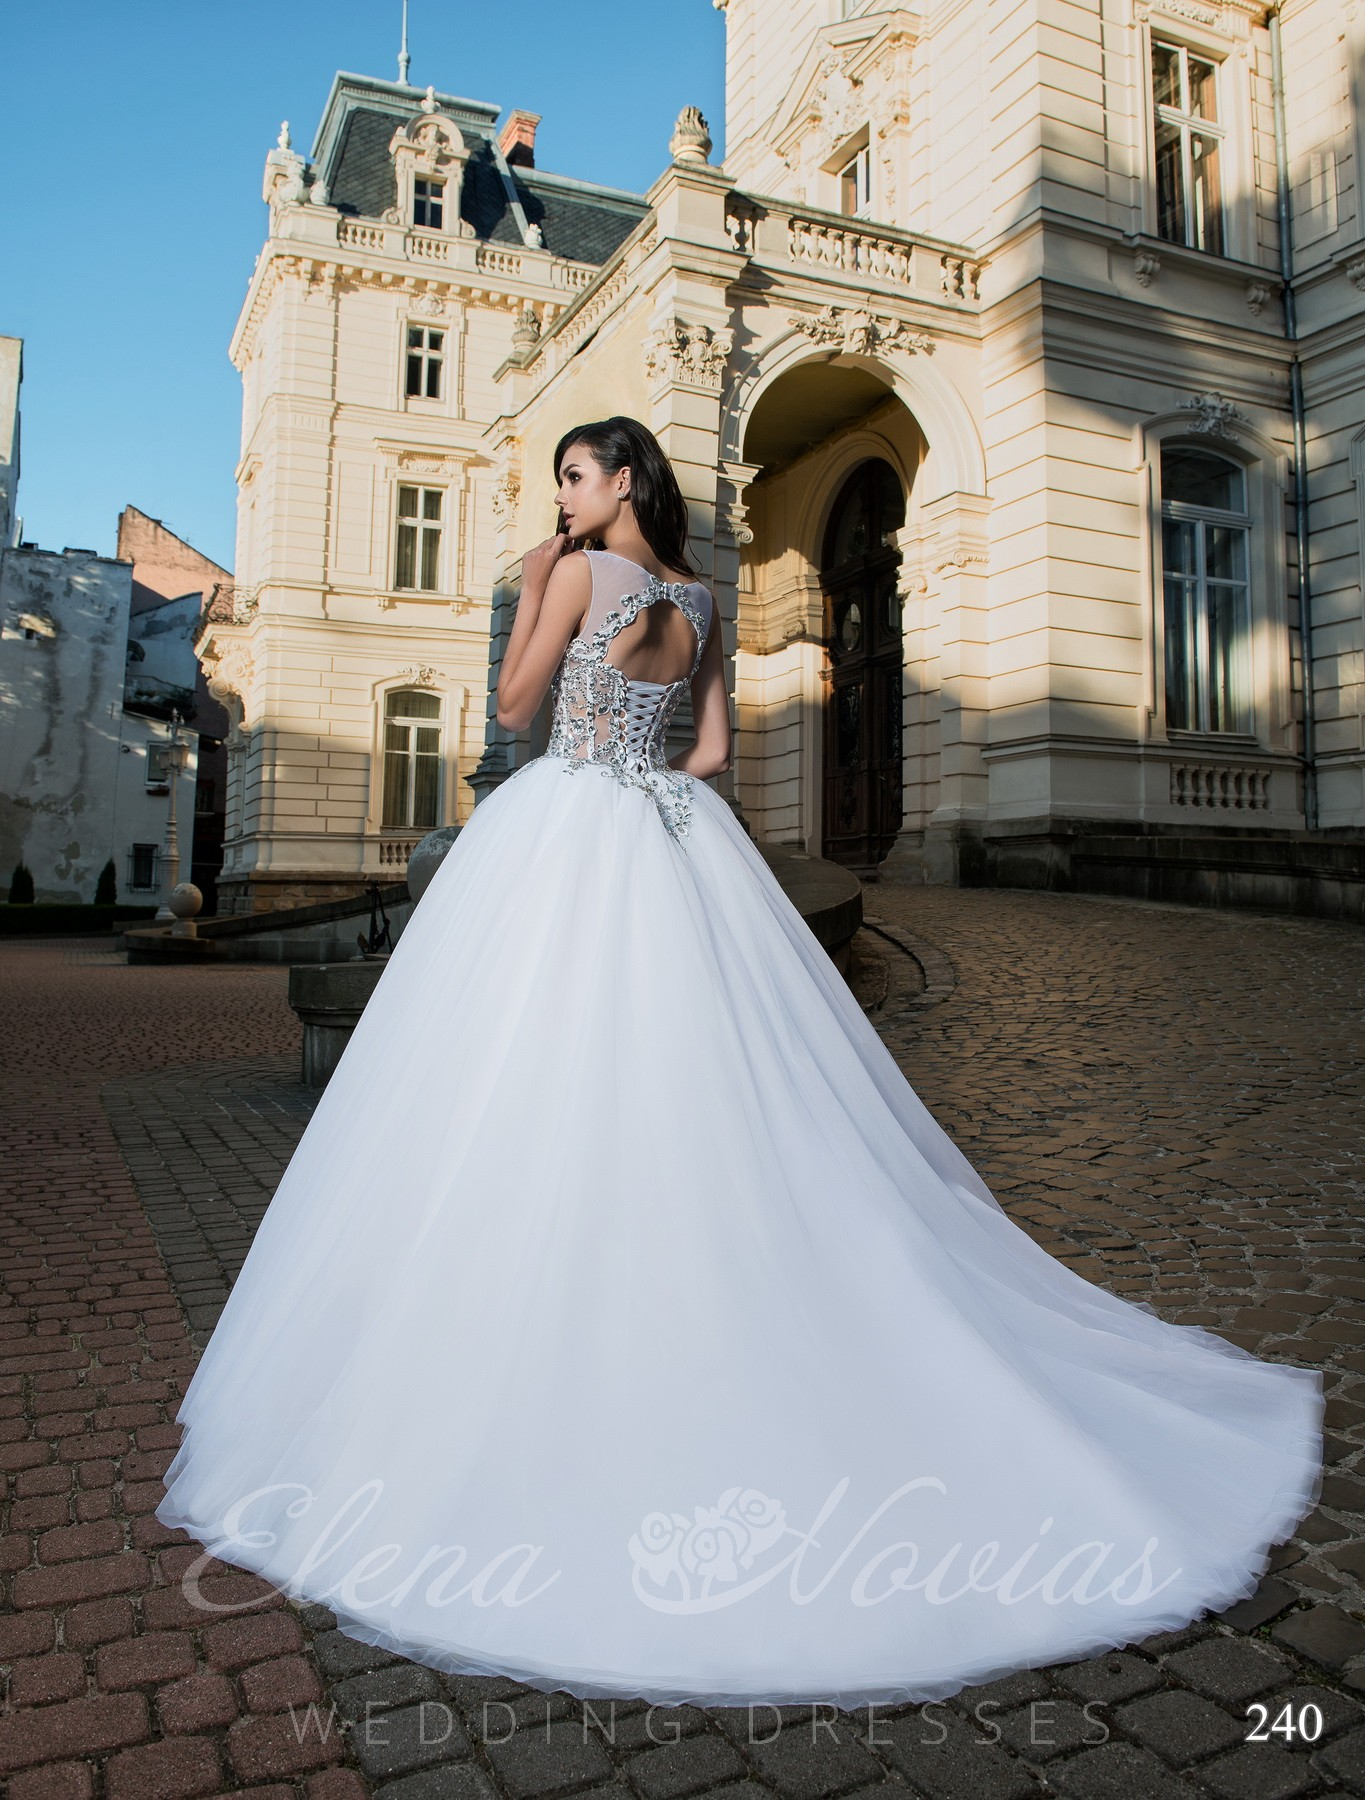 Wedding dress with Swarovski stones model 240